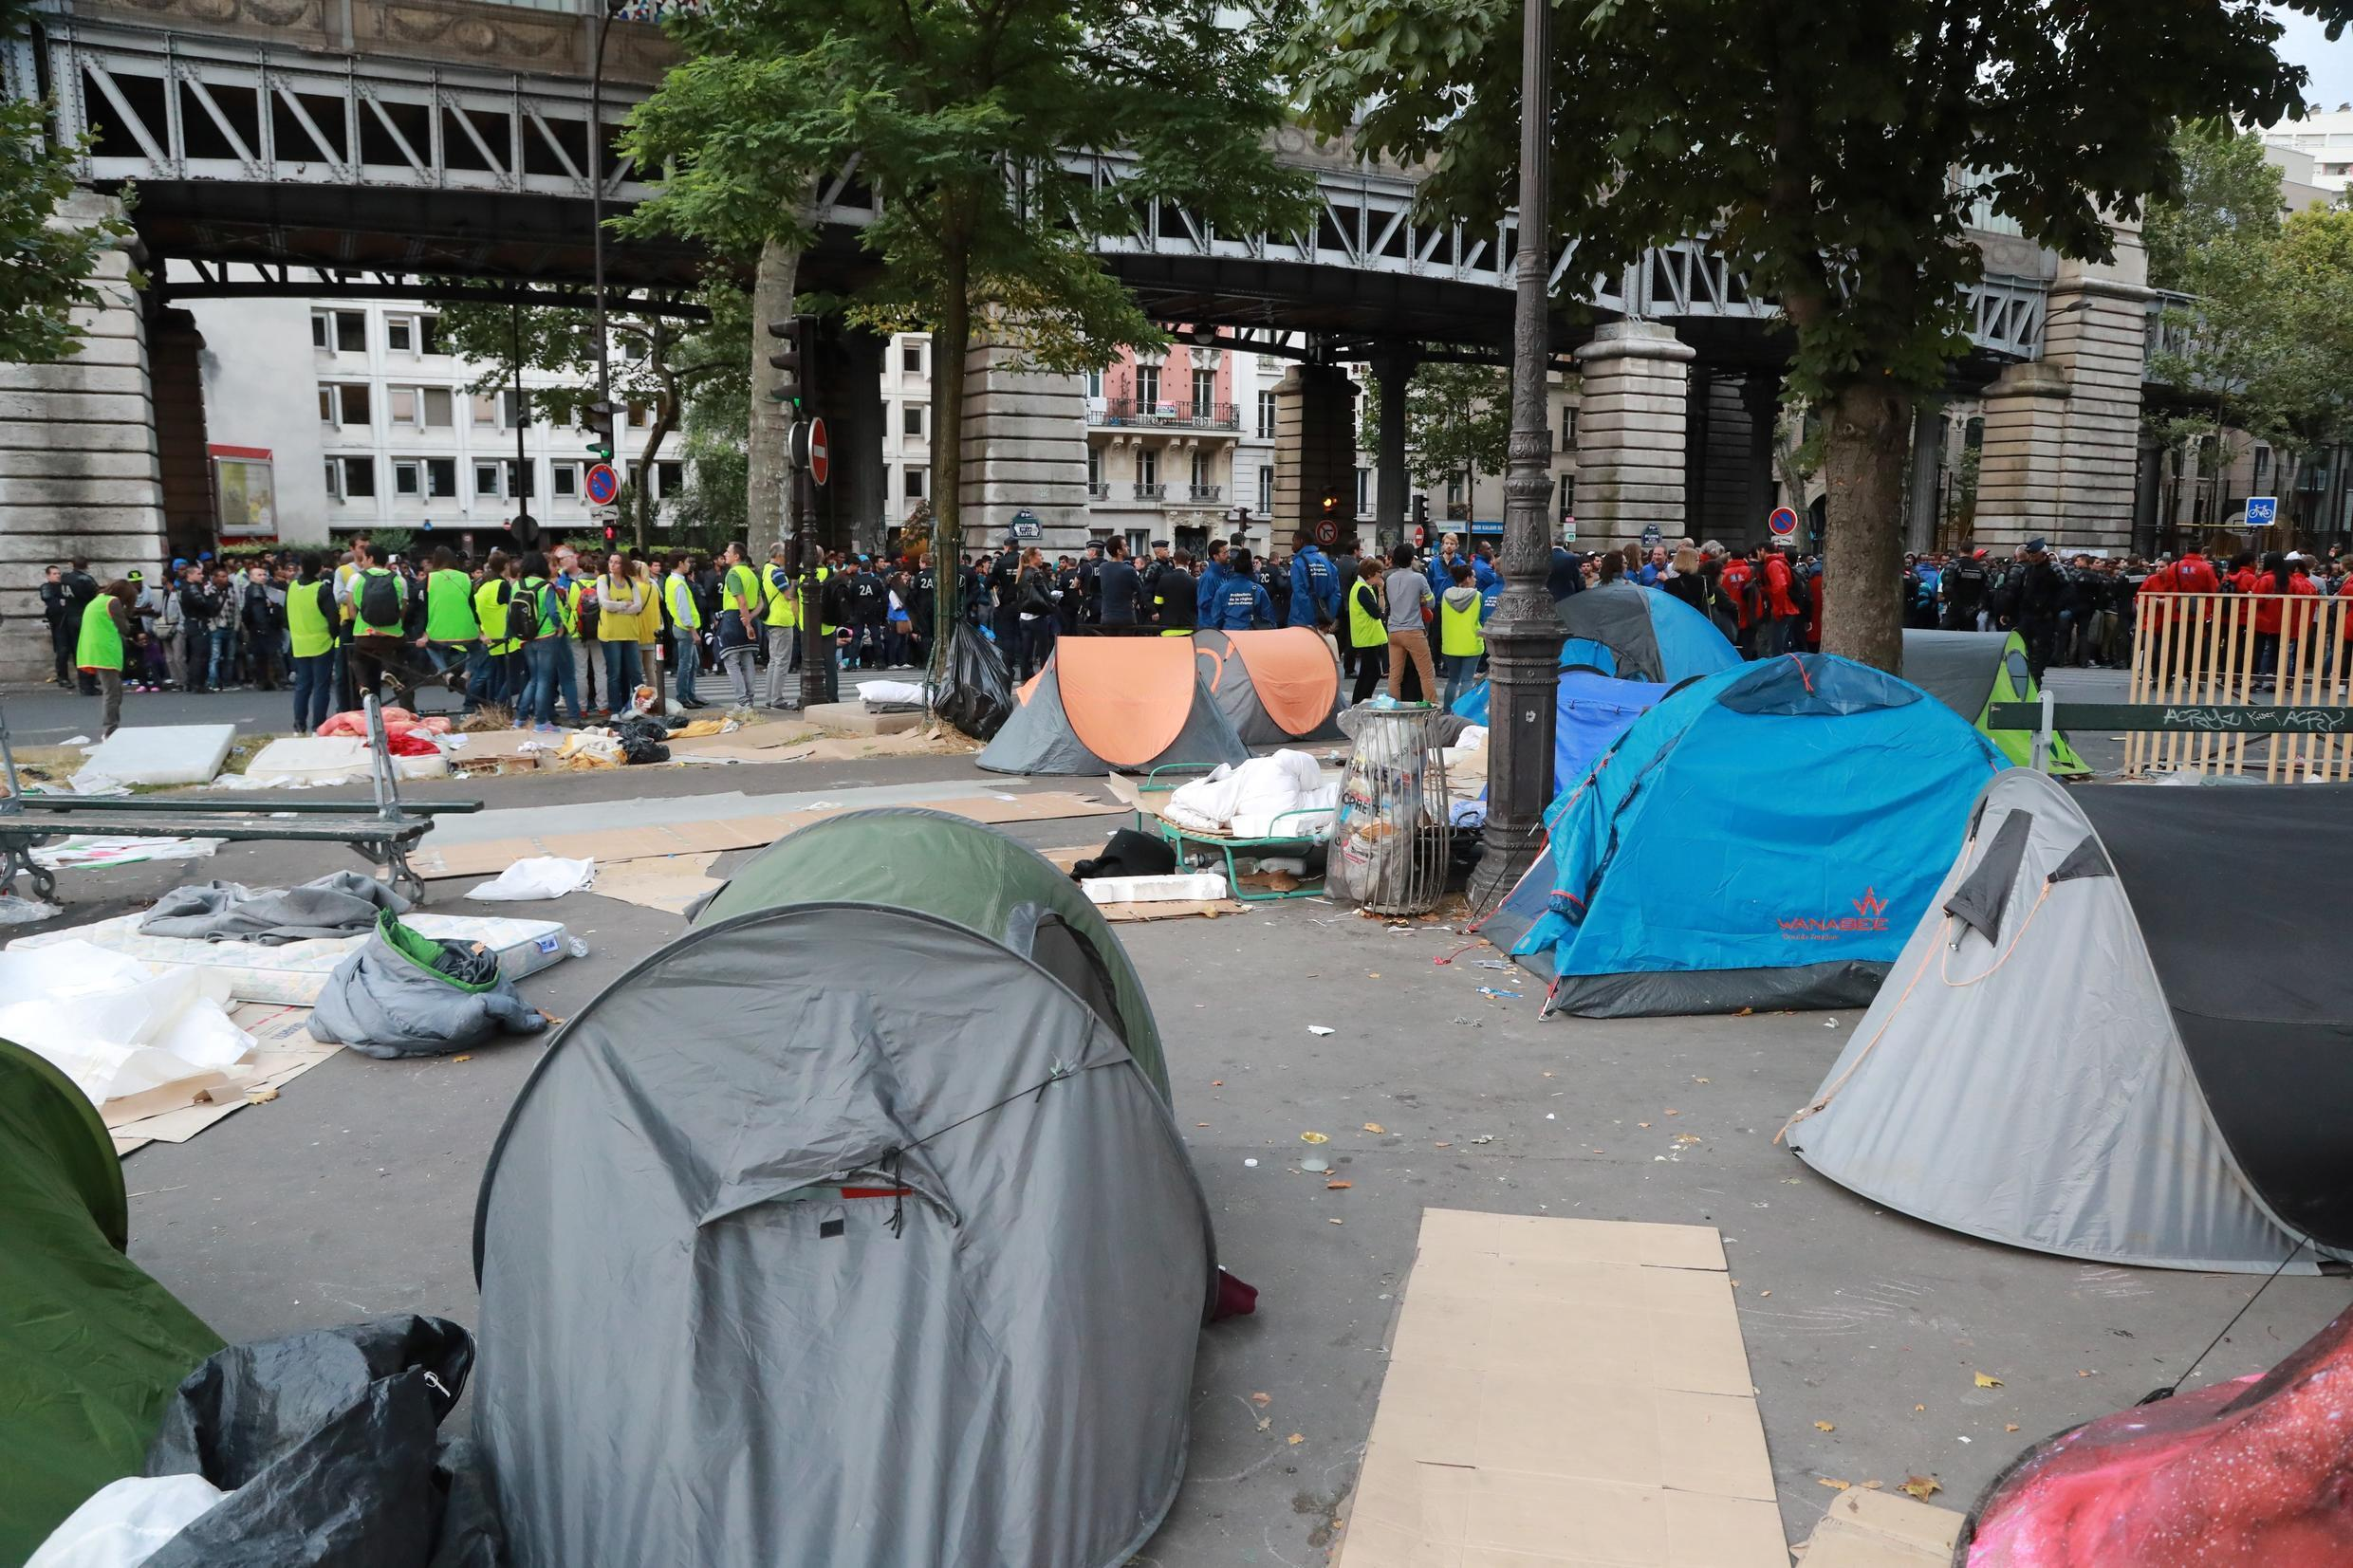 This picture shows empty tents during the evacuation of migrants from a makeshift camp by French police on Friday.